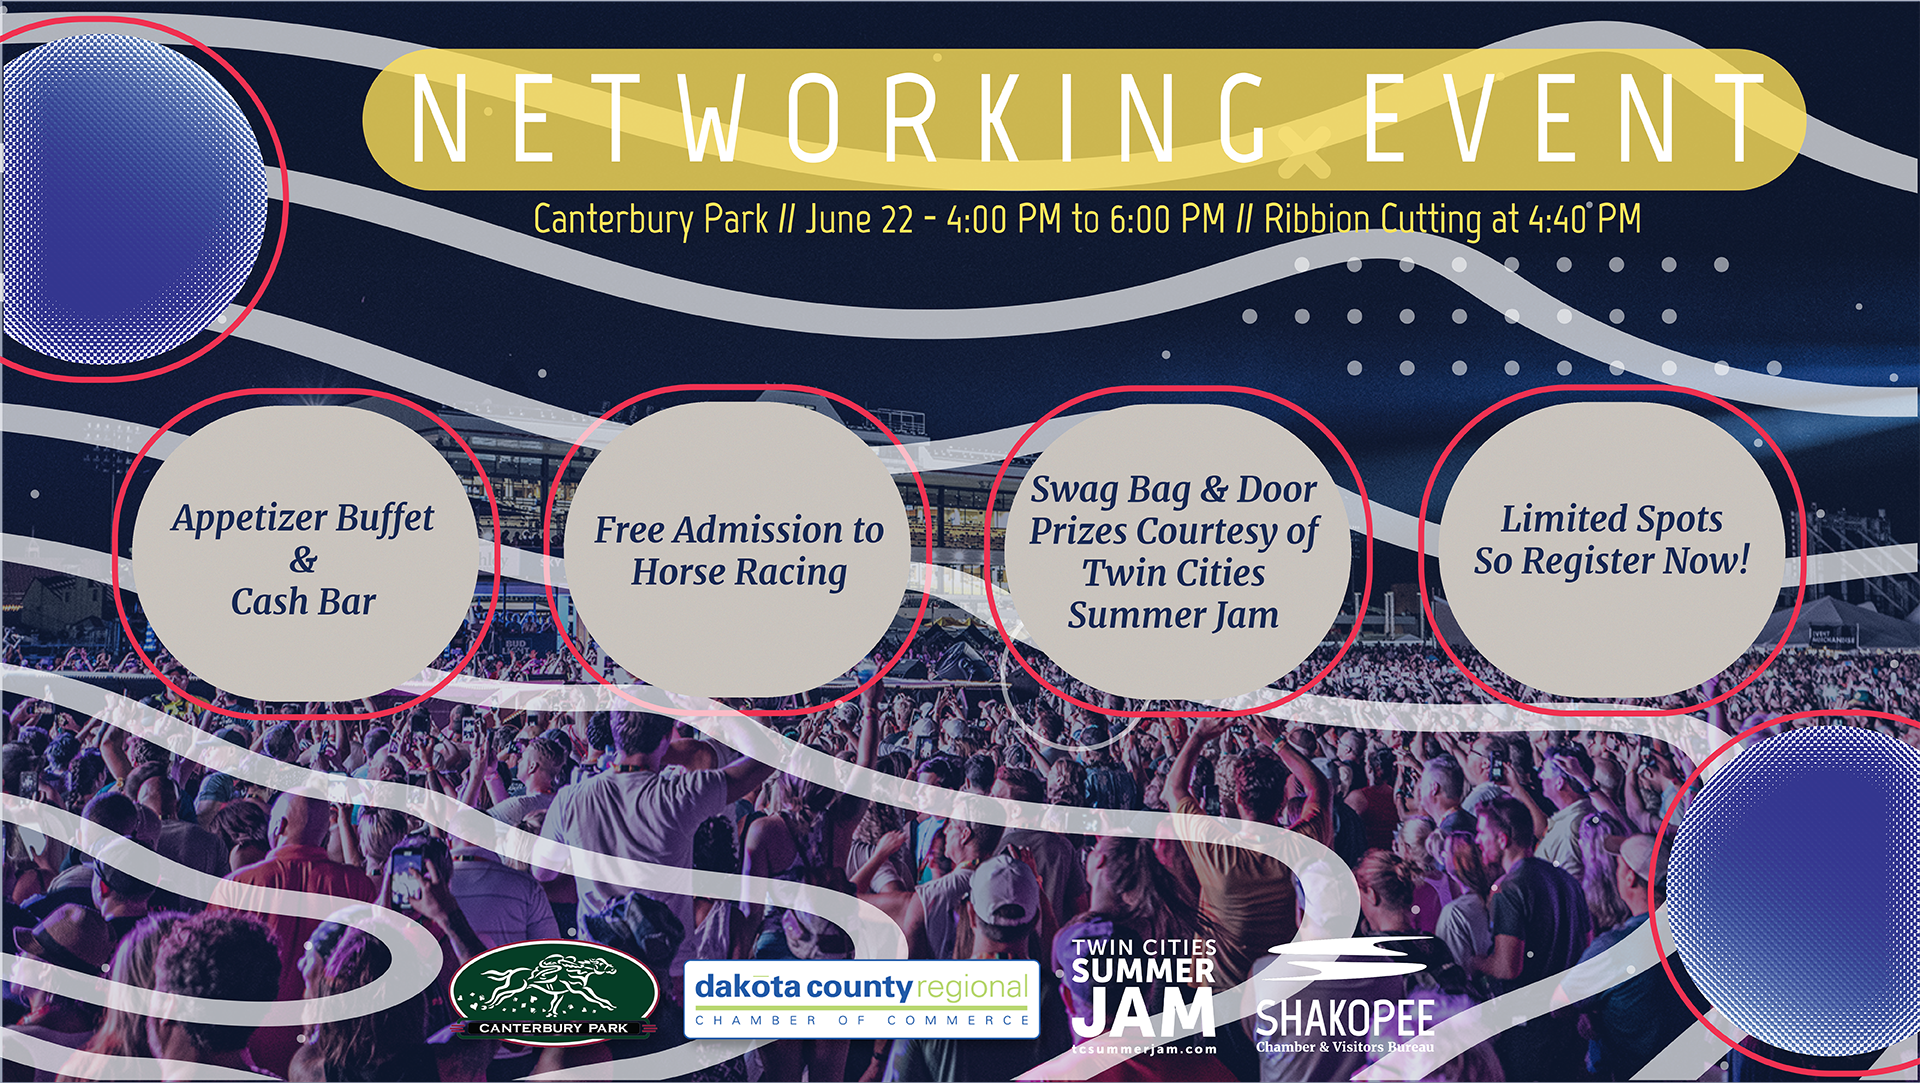 Twin Cities Summer Jam Chamber Cocktail Hour & Networking Event